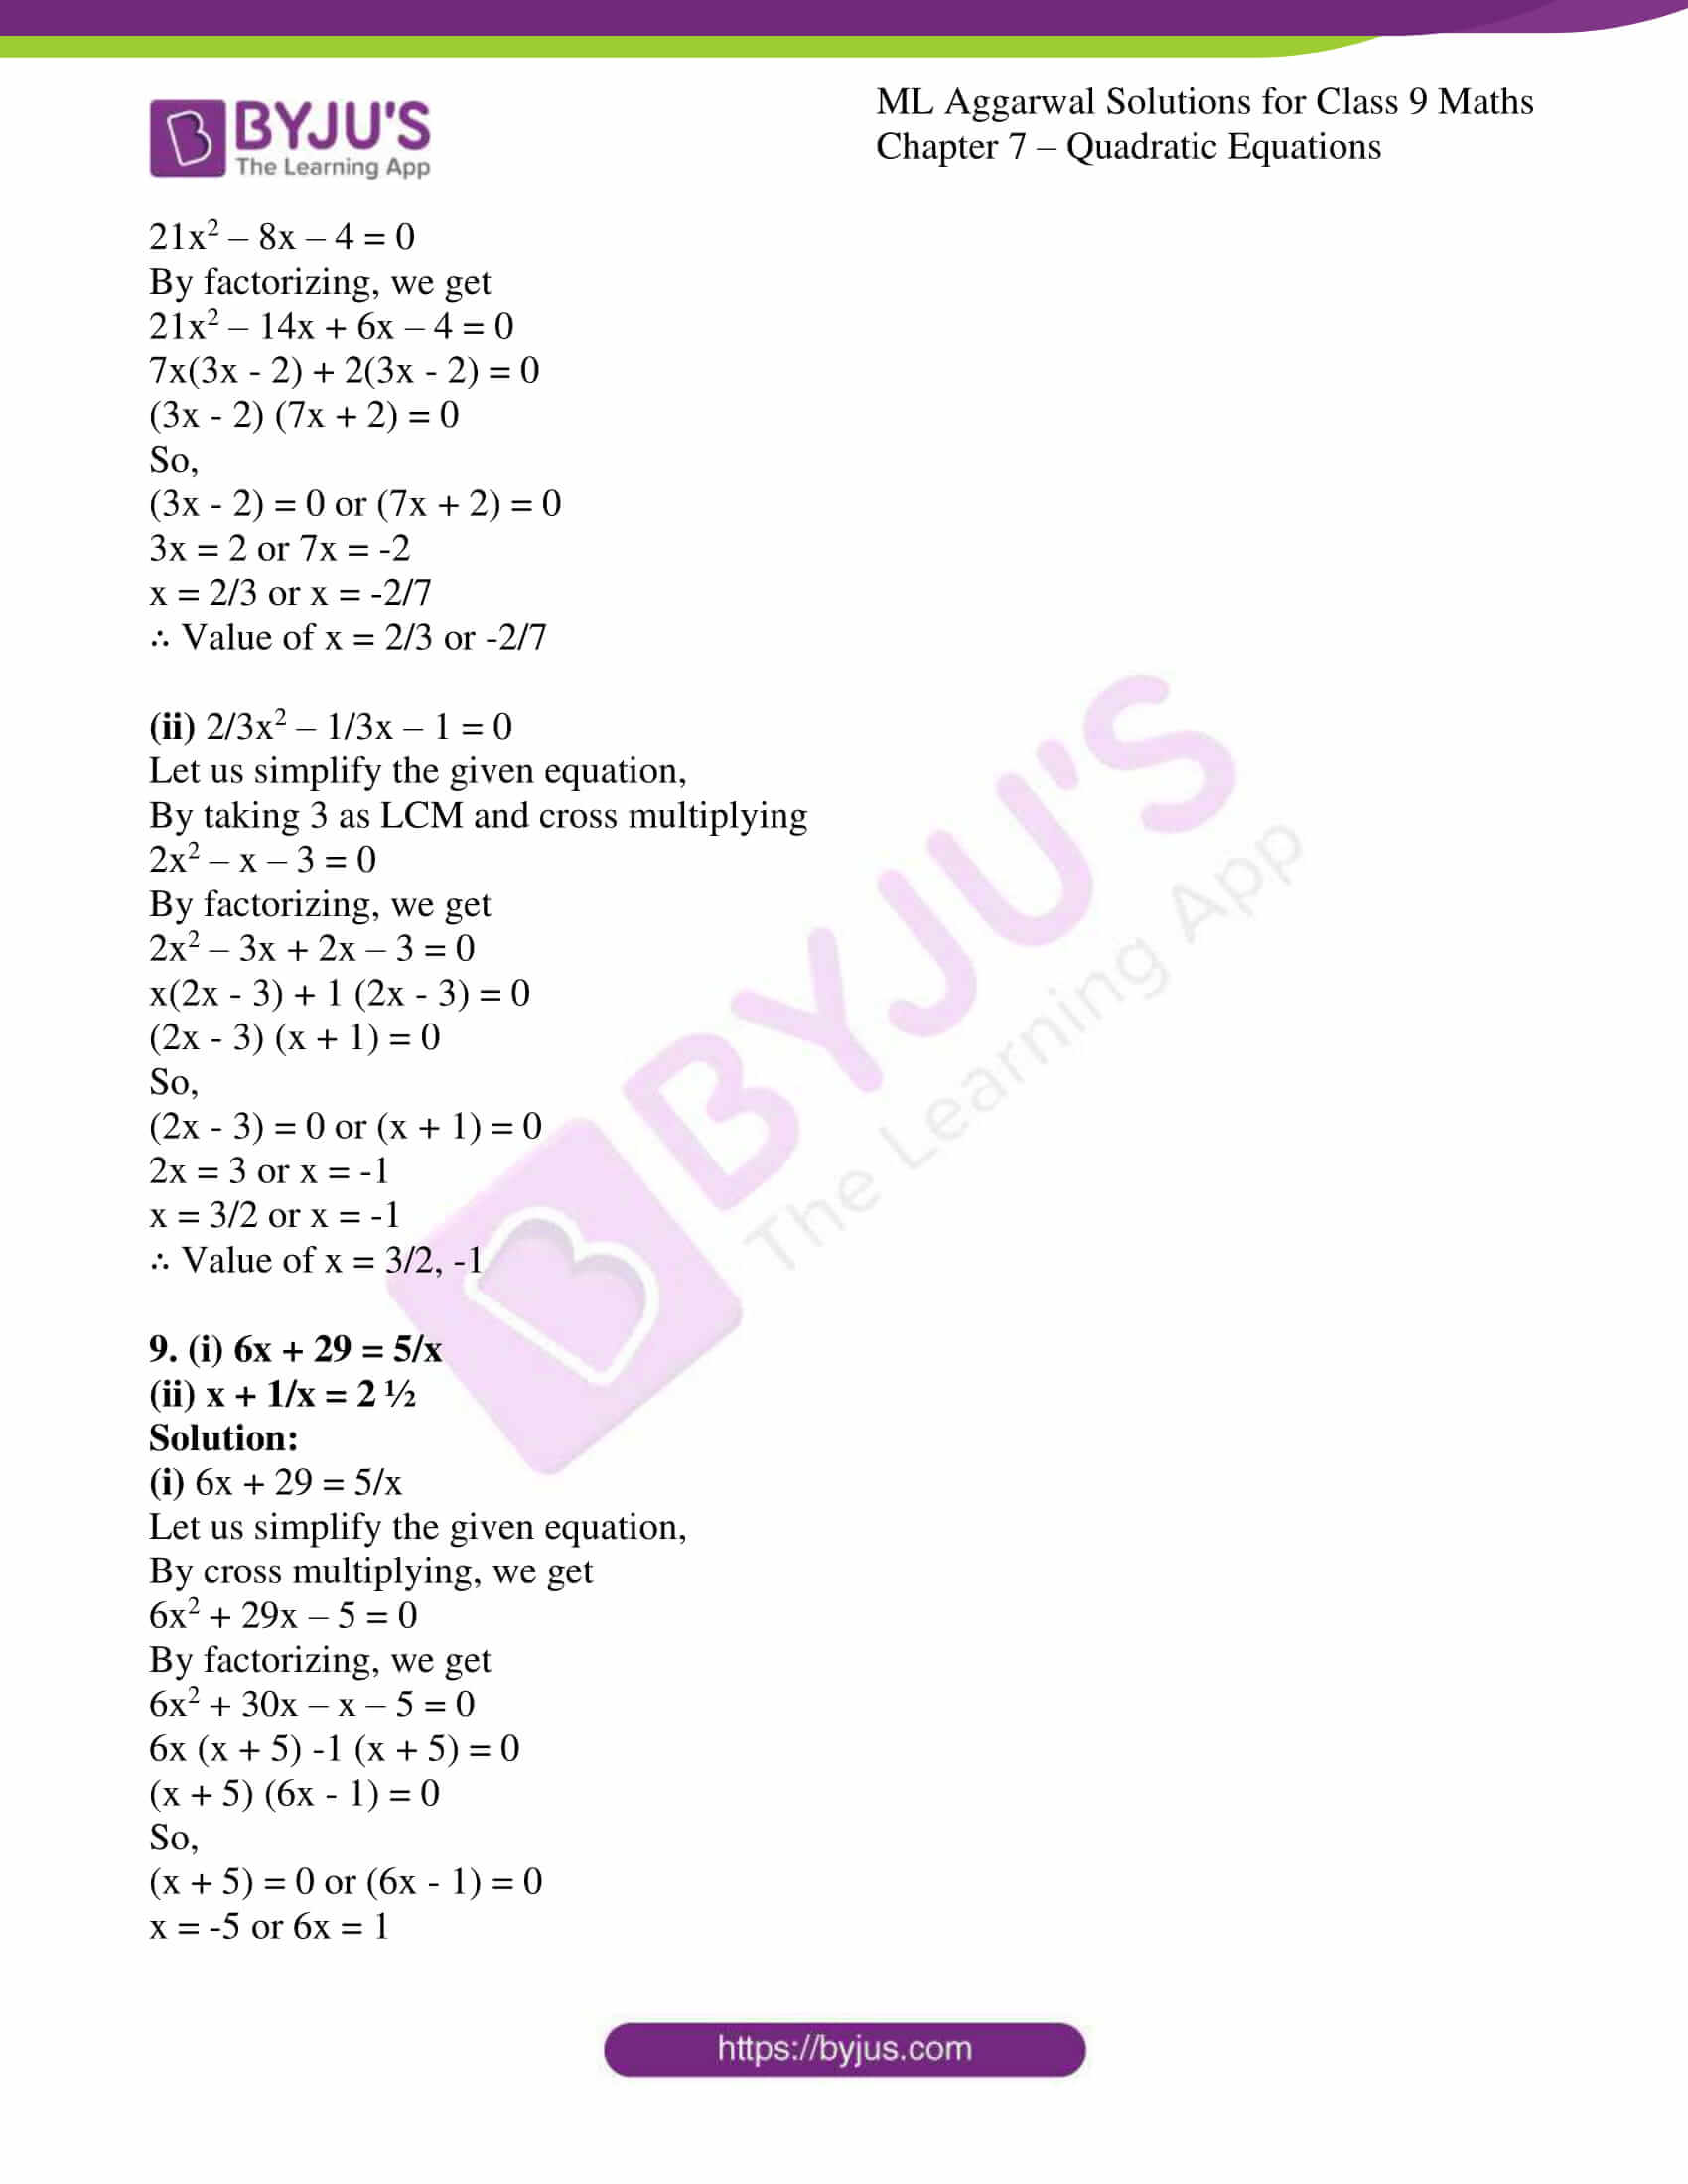 ml aggarwal solutions for class 9 maths chapter 7 06